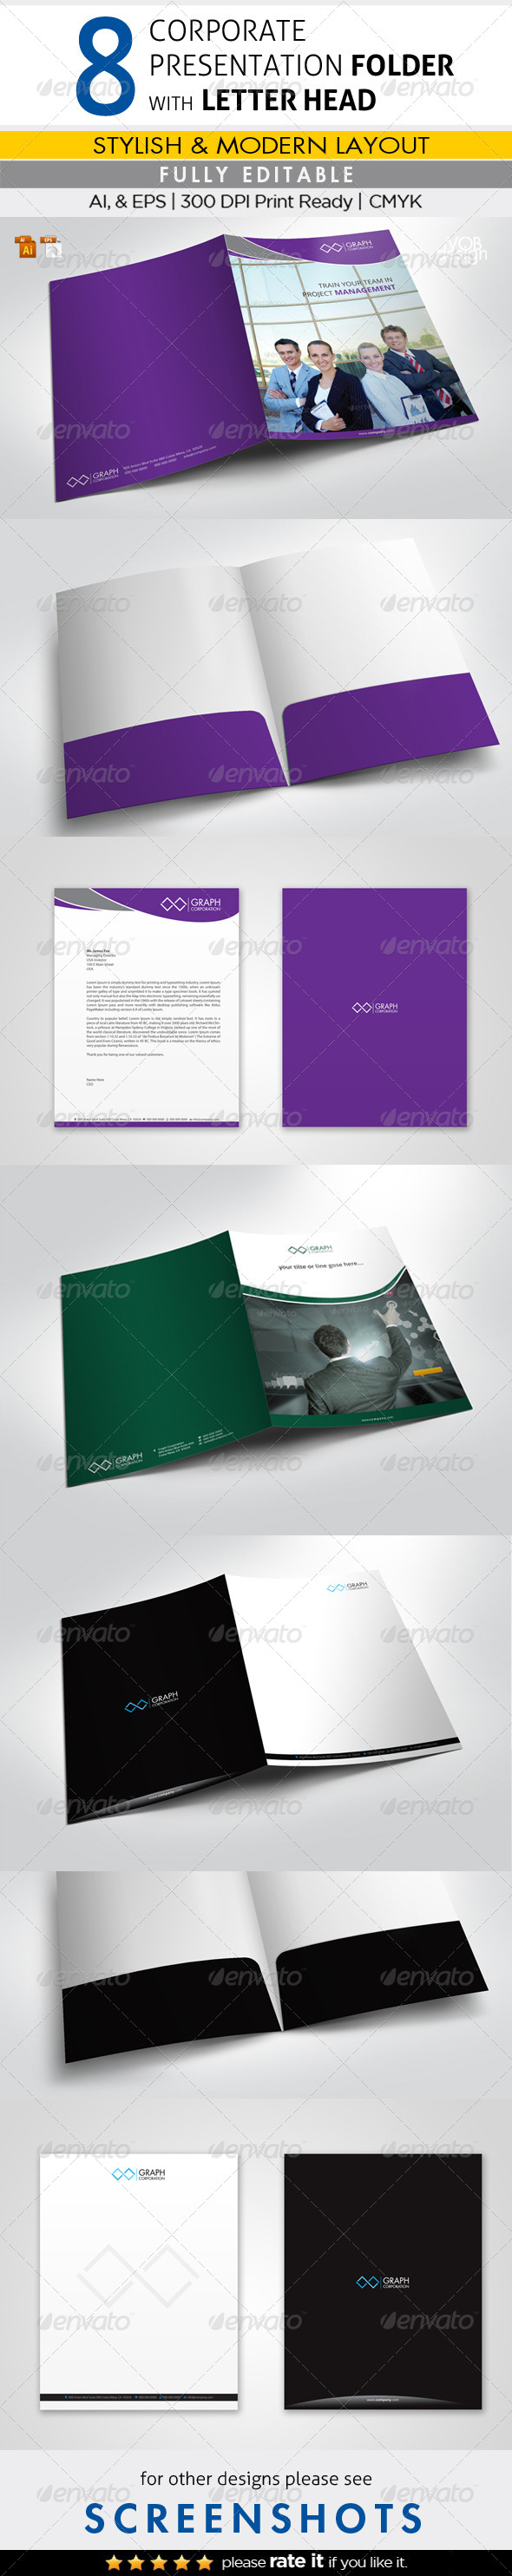 GraphicRiver 8 Corporate Presentation Folder with Letterhead 6827653